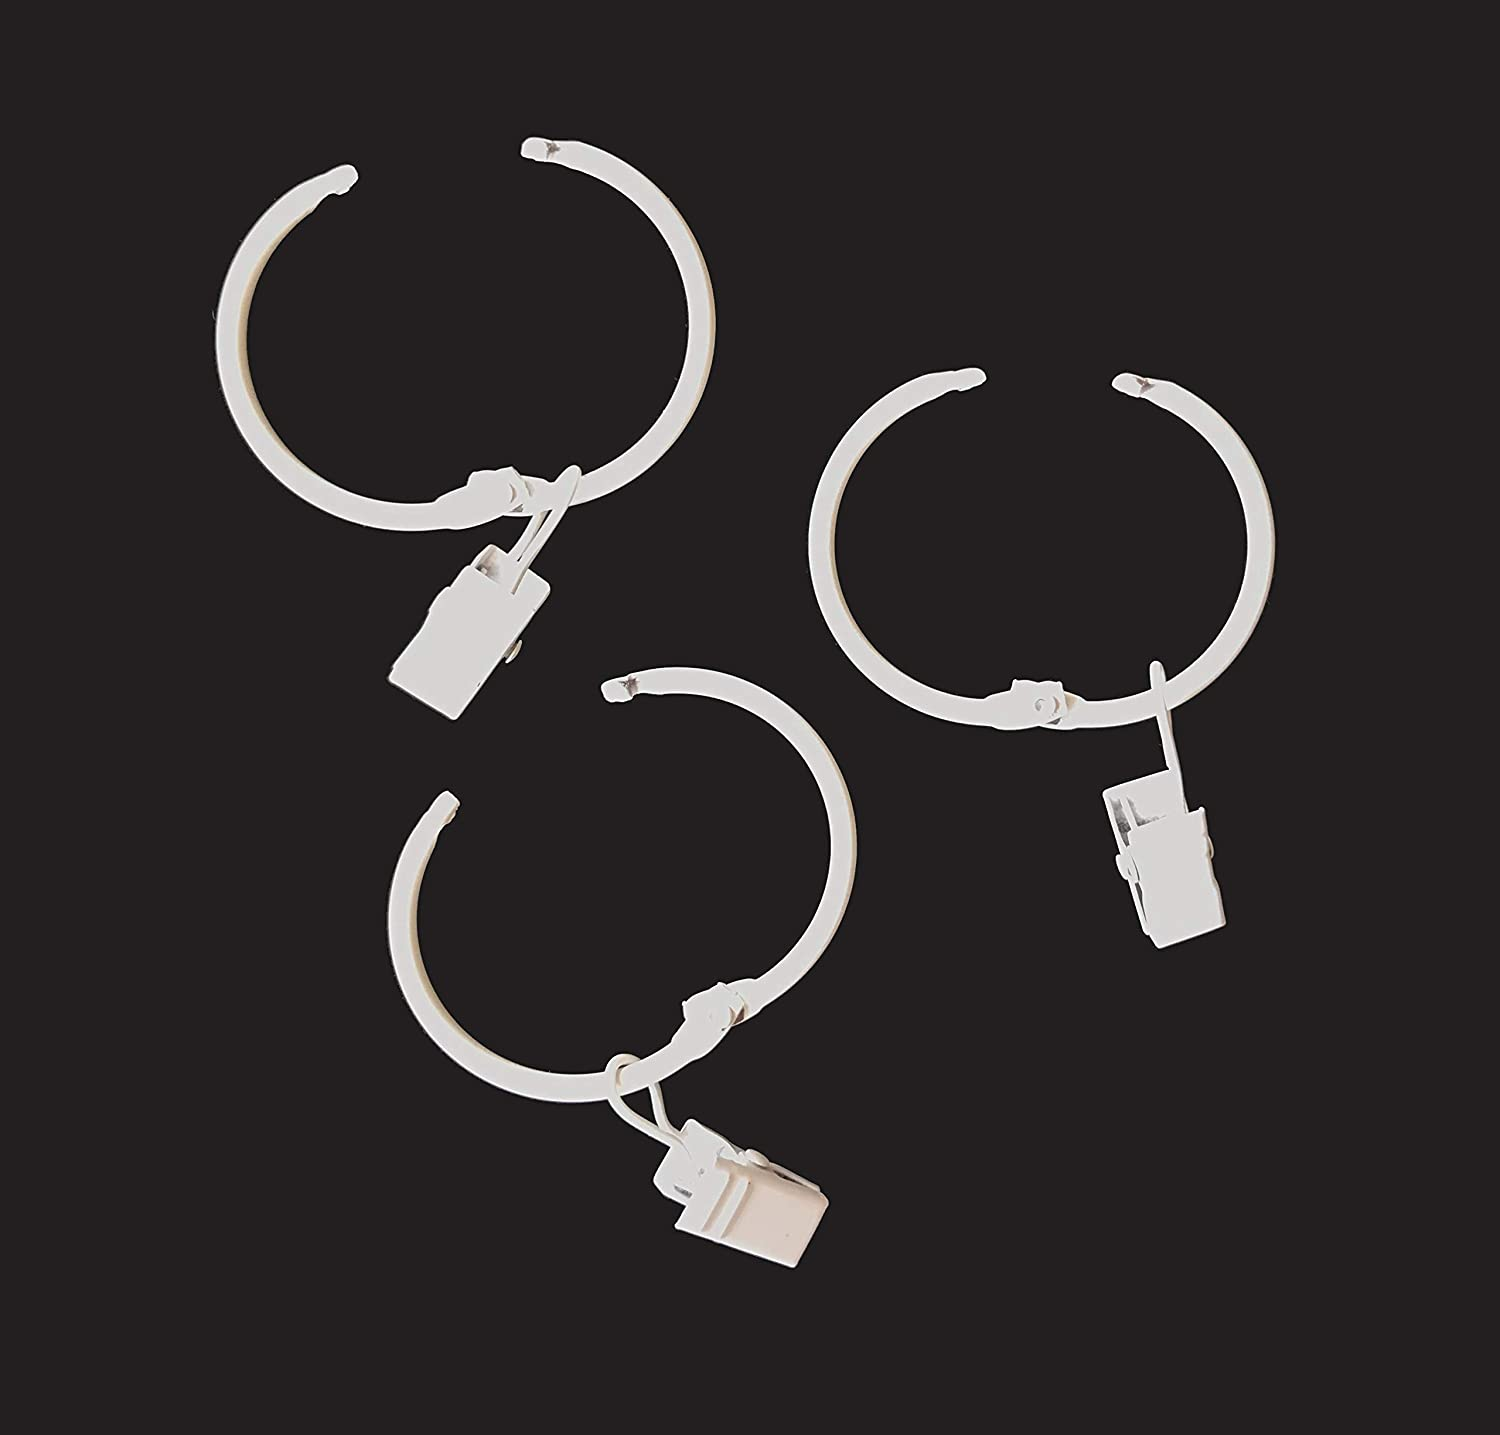 T-Juan MM 28 Pcs Metal Curtain Rings with Clips,1.5-Inch Inner Diameter Rings/Rings Can Easy Open and Close (White)